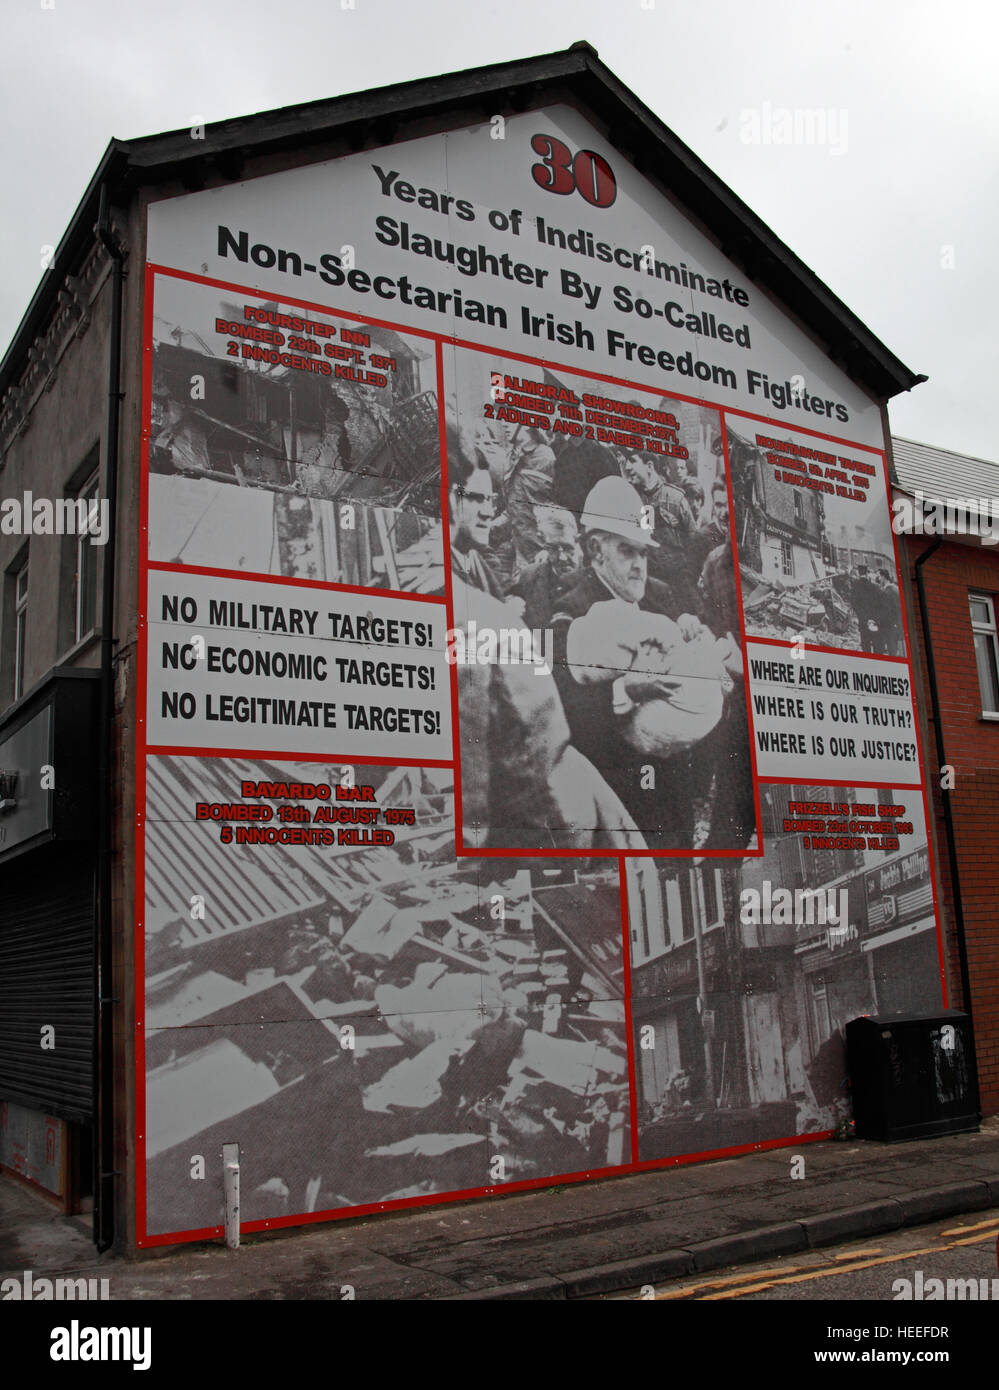 Mural,art,British,Union,wall,walls,gable end,gable,end,Northern,Irish,Republican,violence,para,military,paramilitary,fallen,Martyrs,martyr,street,rd,road,painting,painted,symbolism,Loyalist,culture,history,community,Bar,Aberdeen St,attack,slaughter,by,IRA,Brendan,McFarlane,orange,GoTonySmith,@HotpixUK,Tony,Smith,UK,GB,Great,Britain,United,Kingdom,Irish,British,Ireland,problem,with,problem with,issue with,NI,Northern,Northern Ireland,Belfast,City,Centre,Art,Artists,the,troubles,The Troubles,Good Friday Agreement,Peace,honour,painting,wall,walls,tribute,republicanism,Fight,Justice,West,Beal,feirste,martyrs,social,tour,tourism,tourists,urban,six,counties,6,backdrop,county,Antrim,Shankill,Rd,Road,Royal,Royalist,Loyalist,Belfast streets,Buy Pictures of,Buy Images Of,Images of,Stock Images,Tony Smith,United Kingdom,Great Britain,British Isles